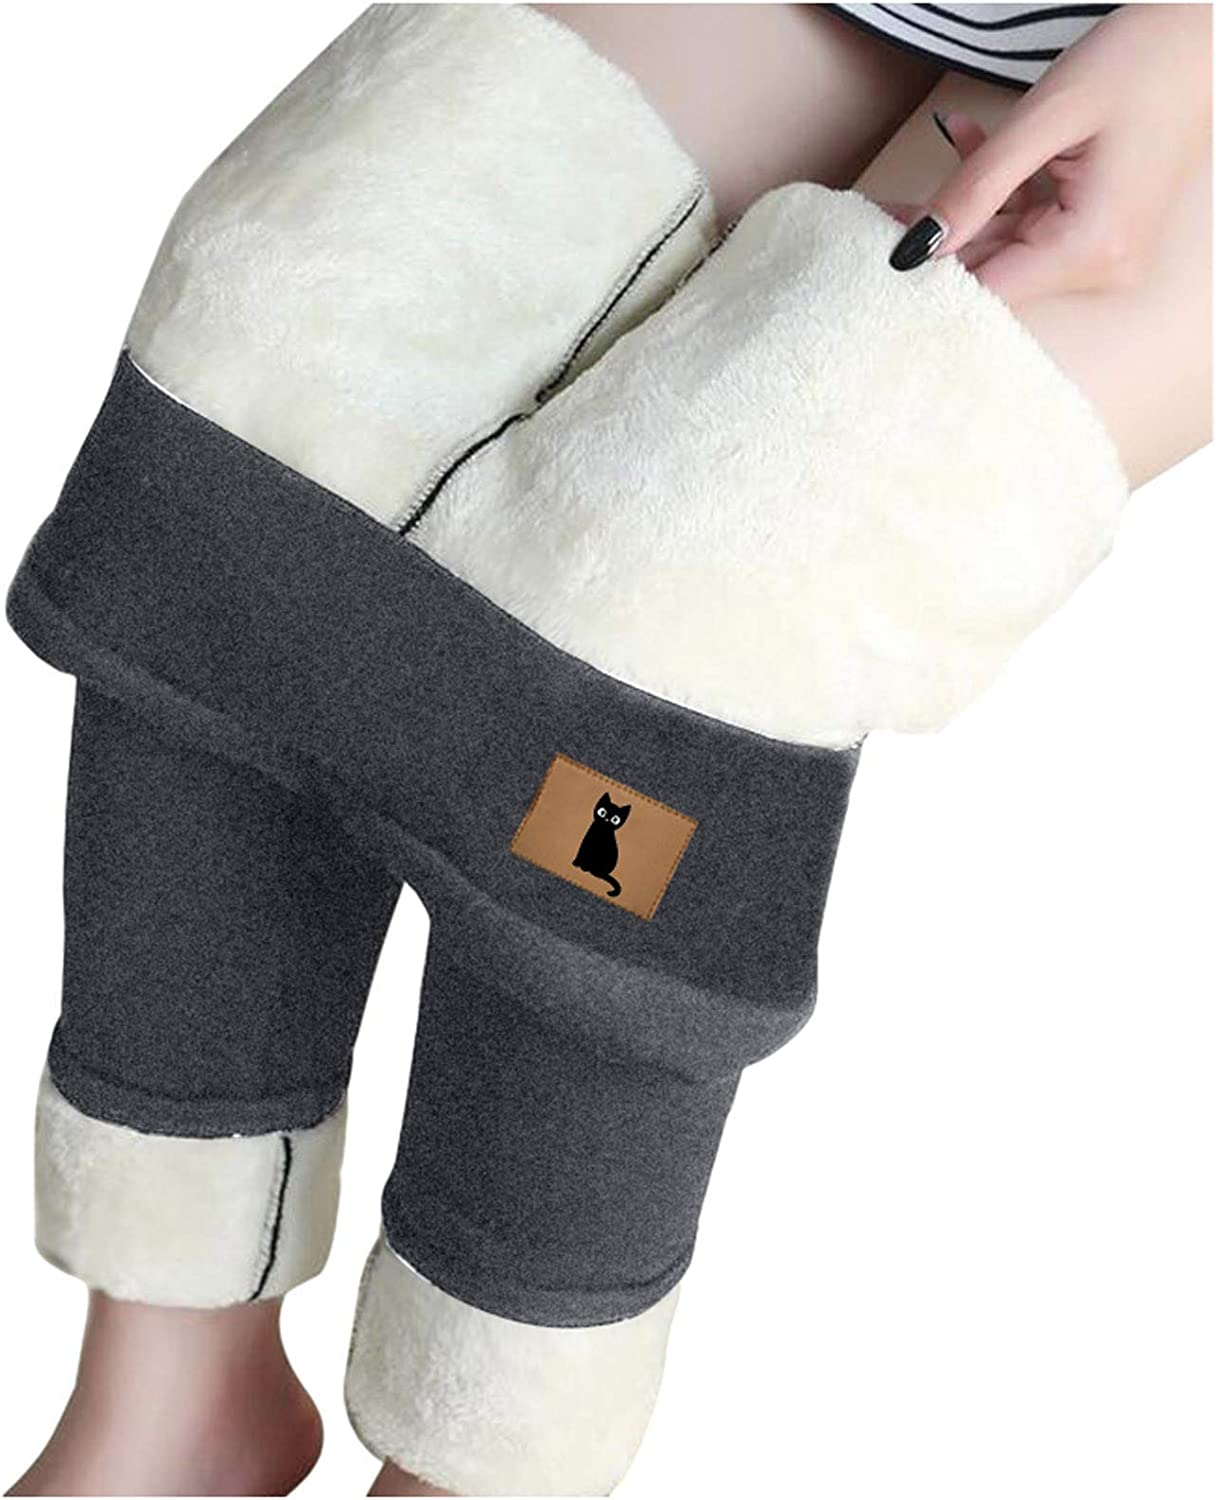 Super Thick Fleece Lined Leggings Women - Thickened Slim Winter Leggings Plush Warm Pants High Waist Elastic Slim Tights